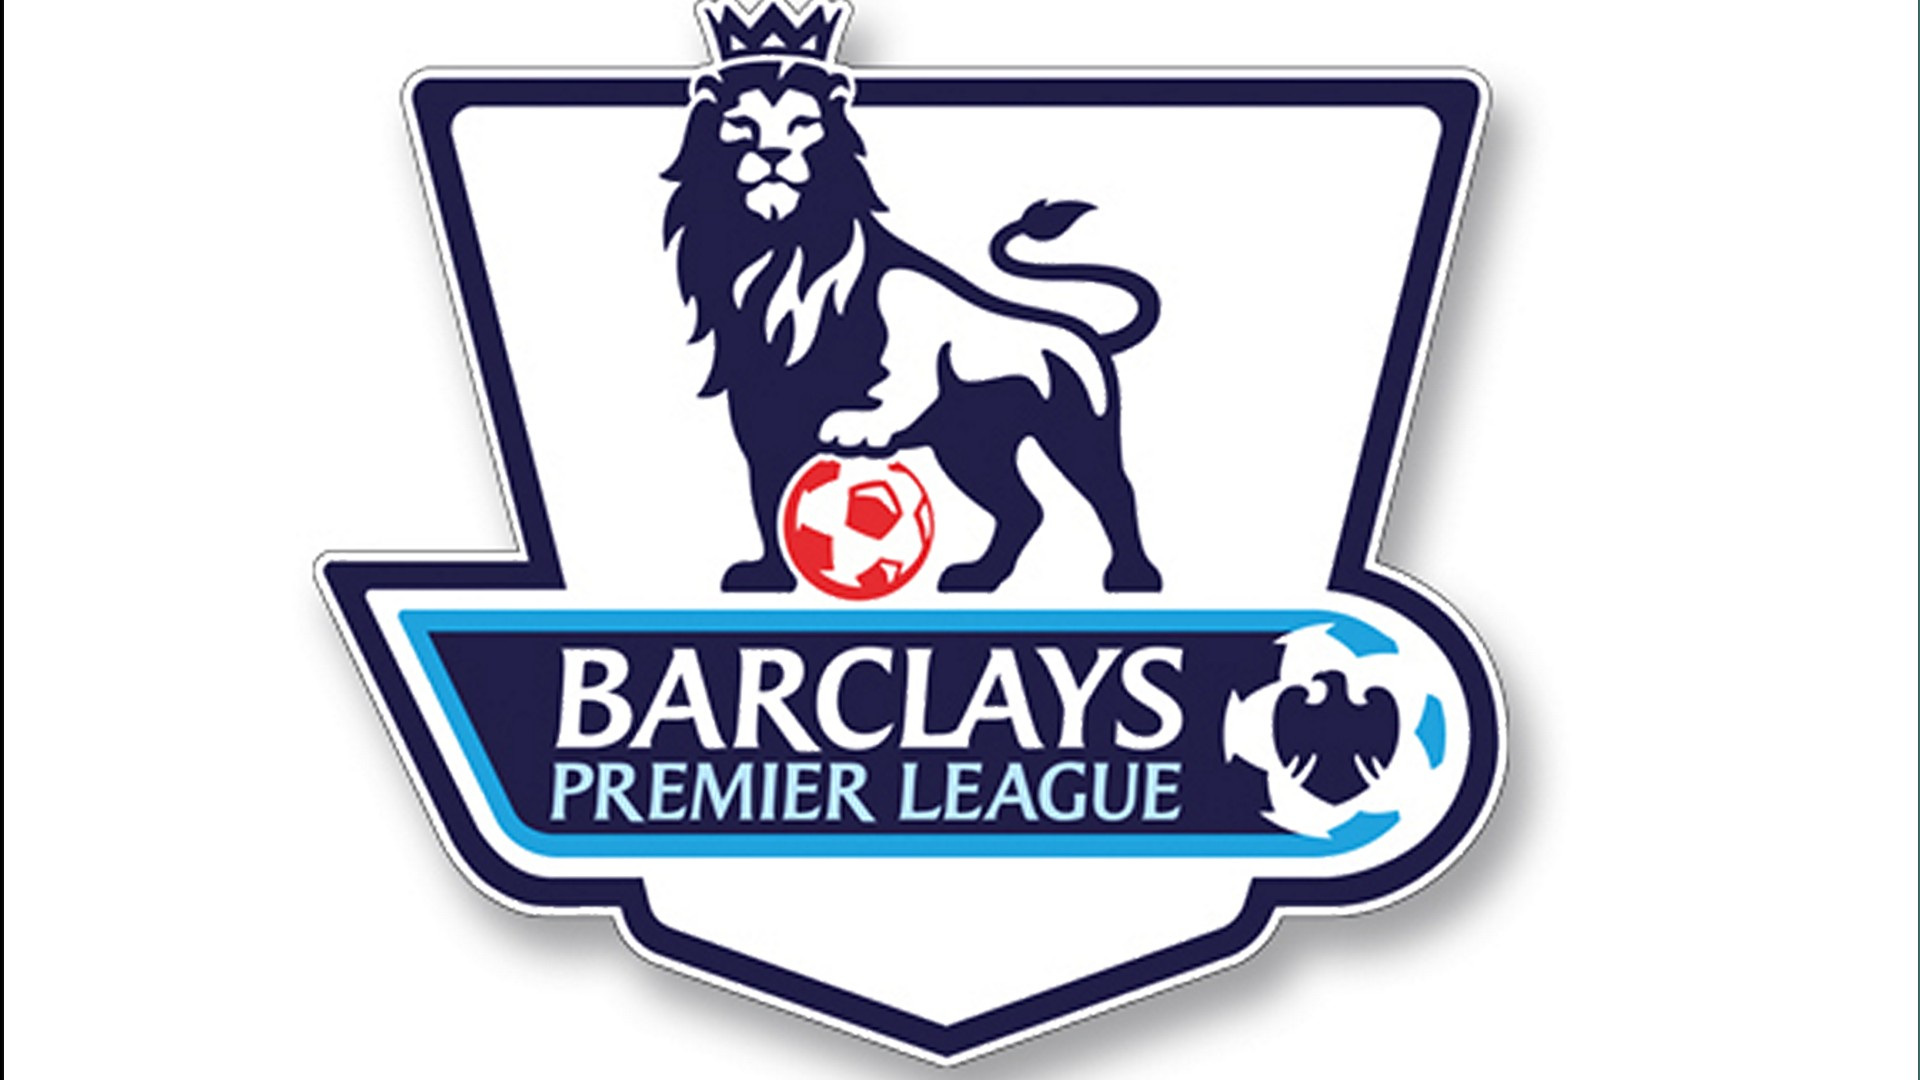 barclays-premier-league-logo-white_1920x1080_1044-hd